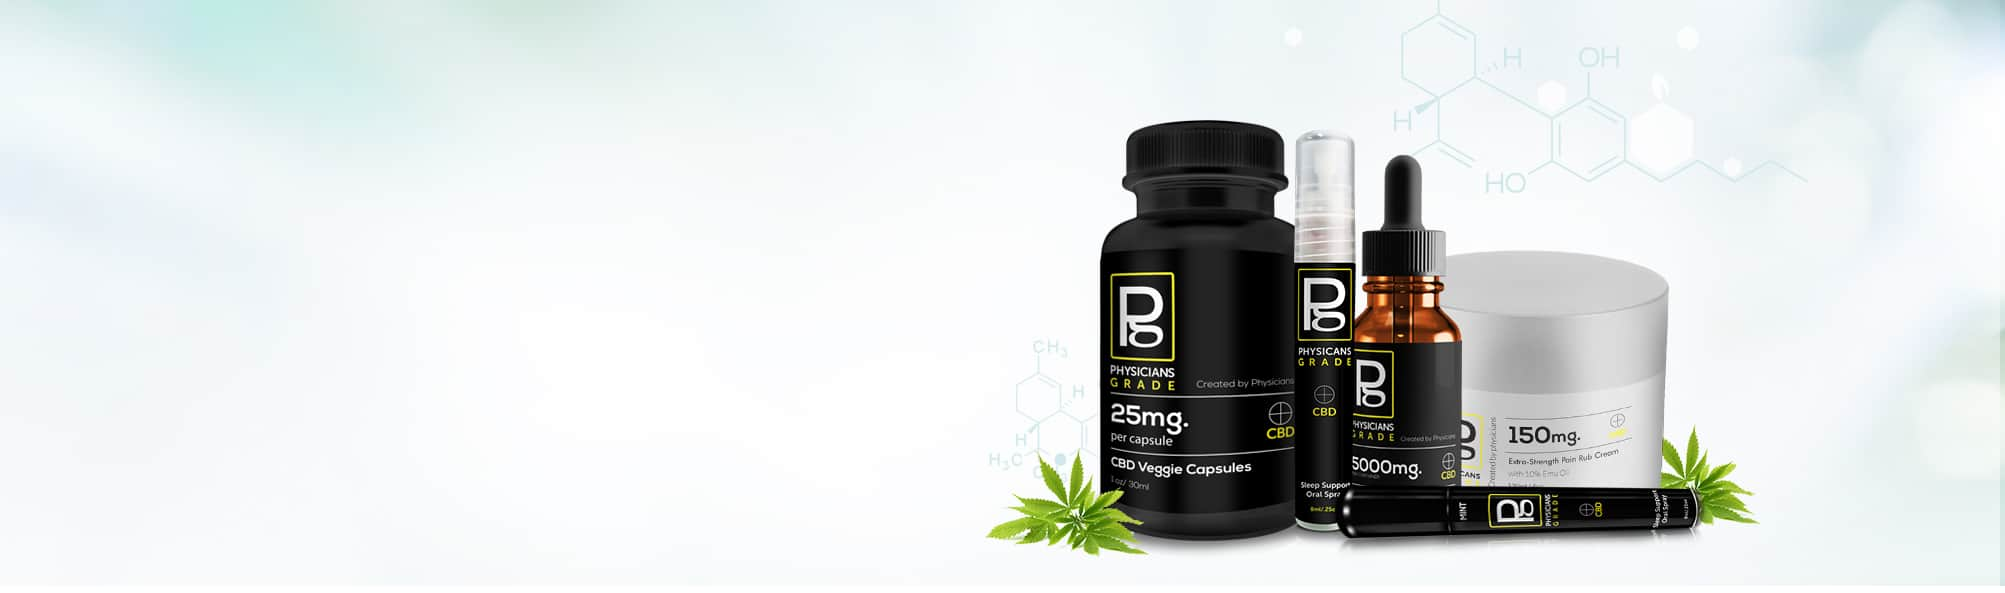 Physicians Grade Coupon Code Online Discount Save On Cannabis